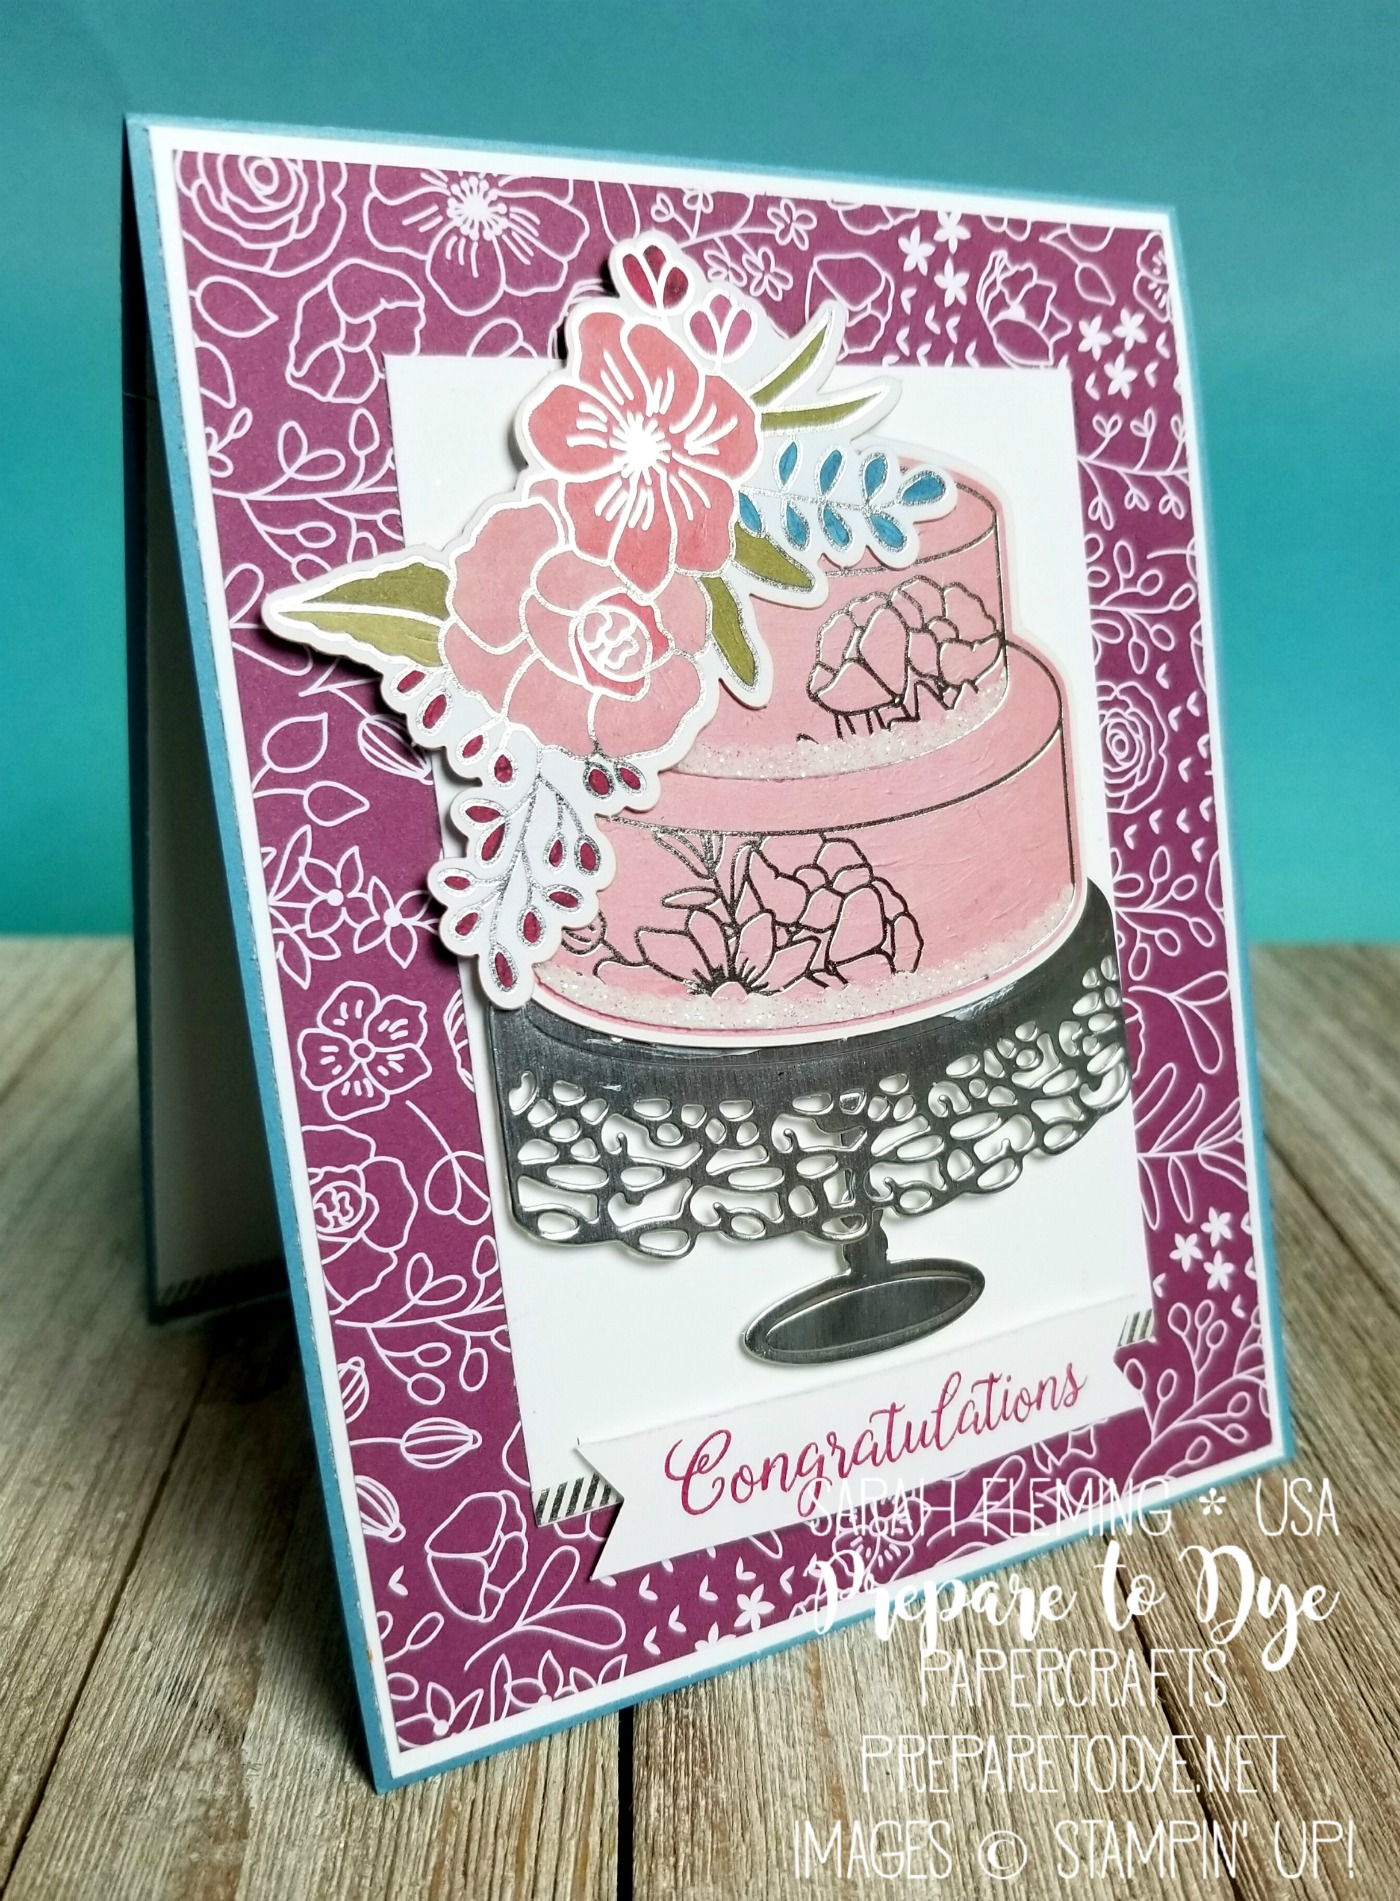 Stampin' Up! Sweet Soiree Suite is just so lovely - Cake Soiree with Sweet Cake framelits, Sweet Soiree Memories & More, 2018 Occasions and Sale-A-Bration - Sarah Fleming - Prepare to Dye Papercrafts